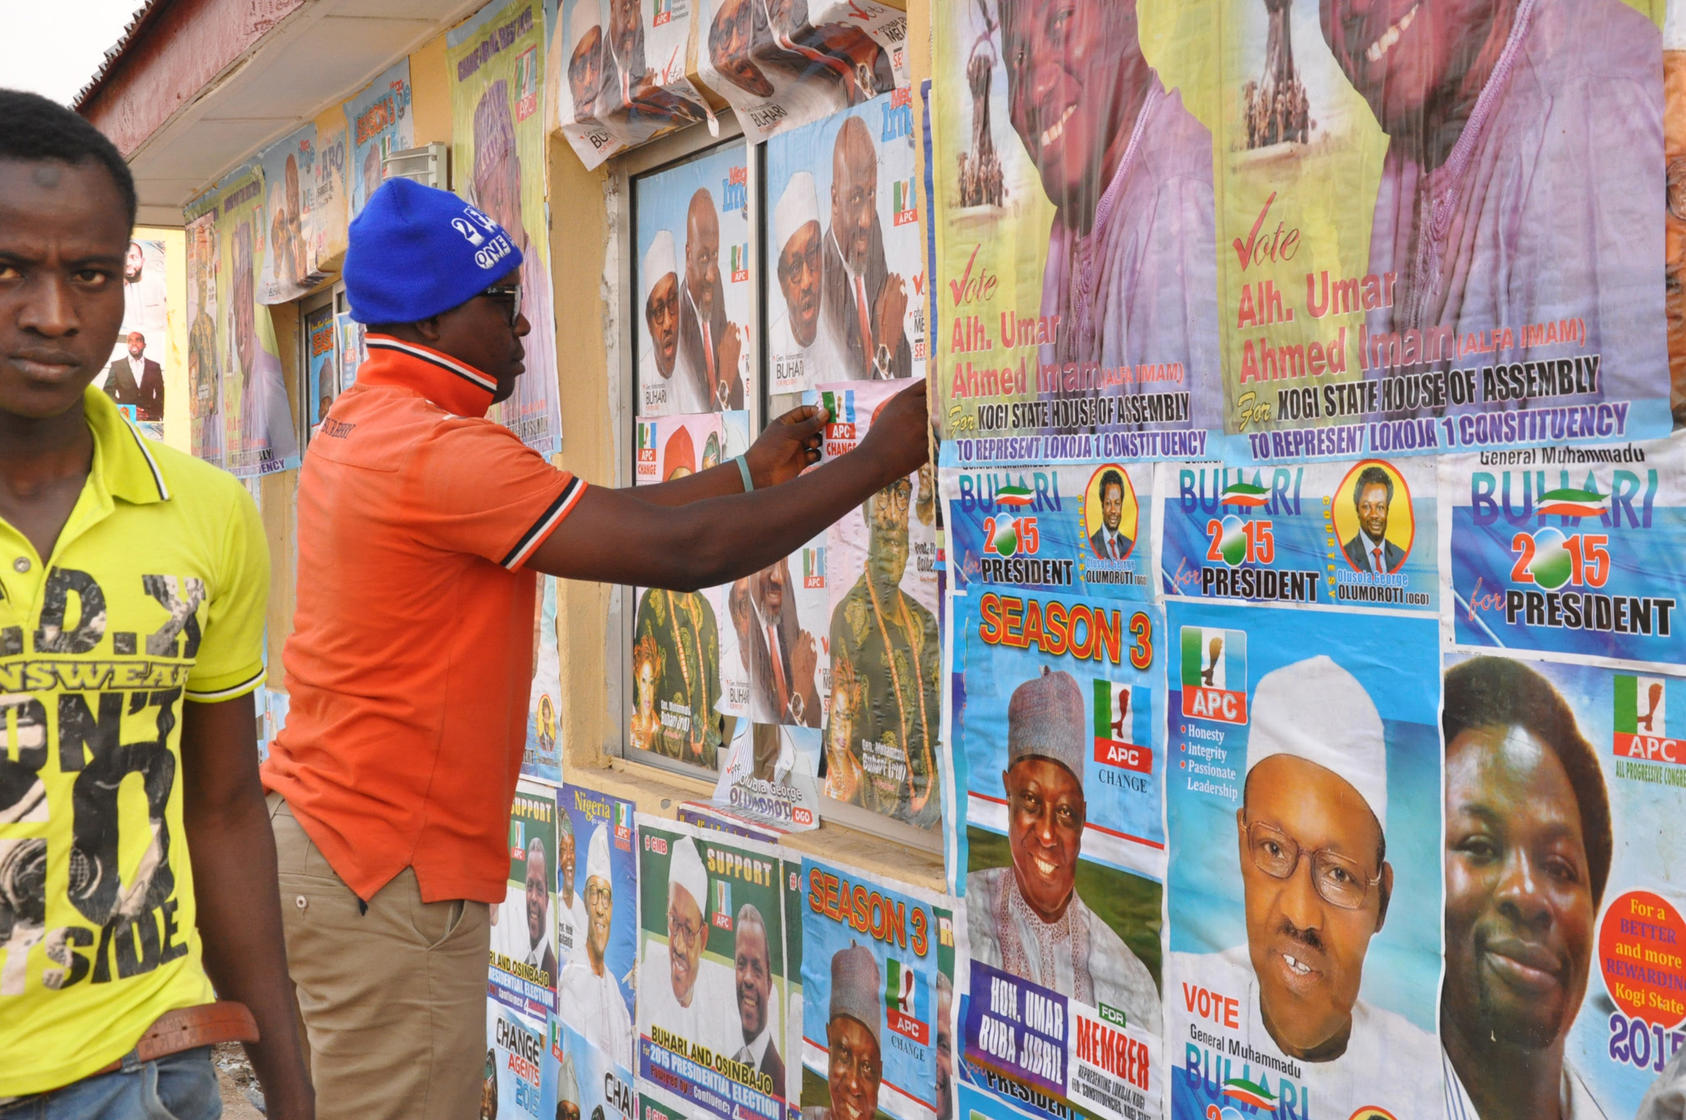 20150202-Election-in-Nigeria-2015-Stiftung-Flickr-PC.jpg